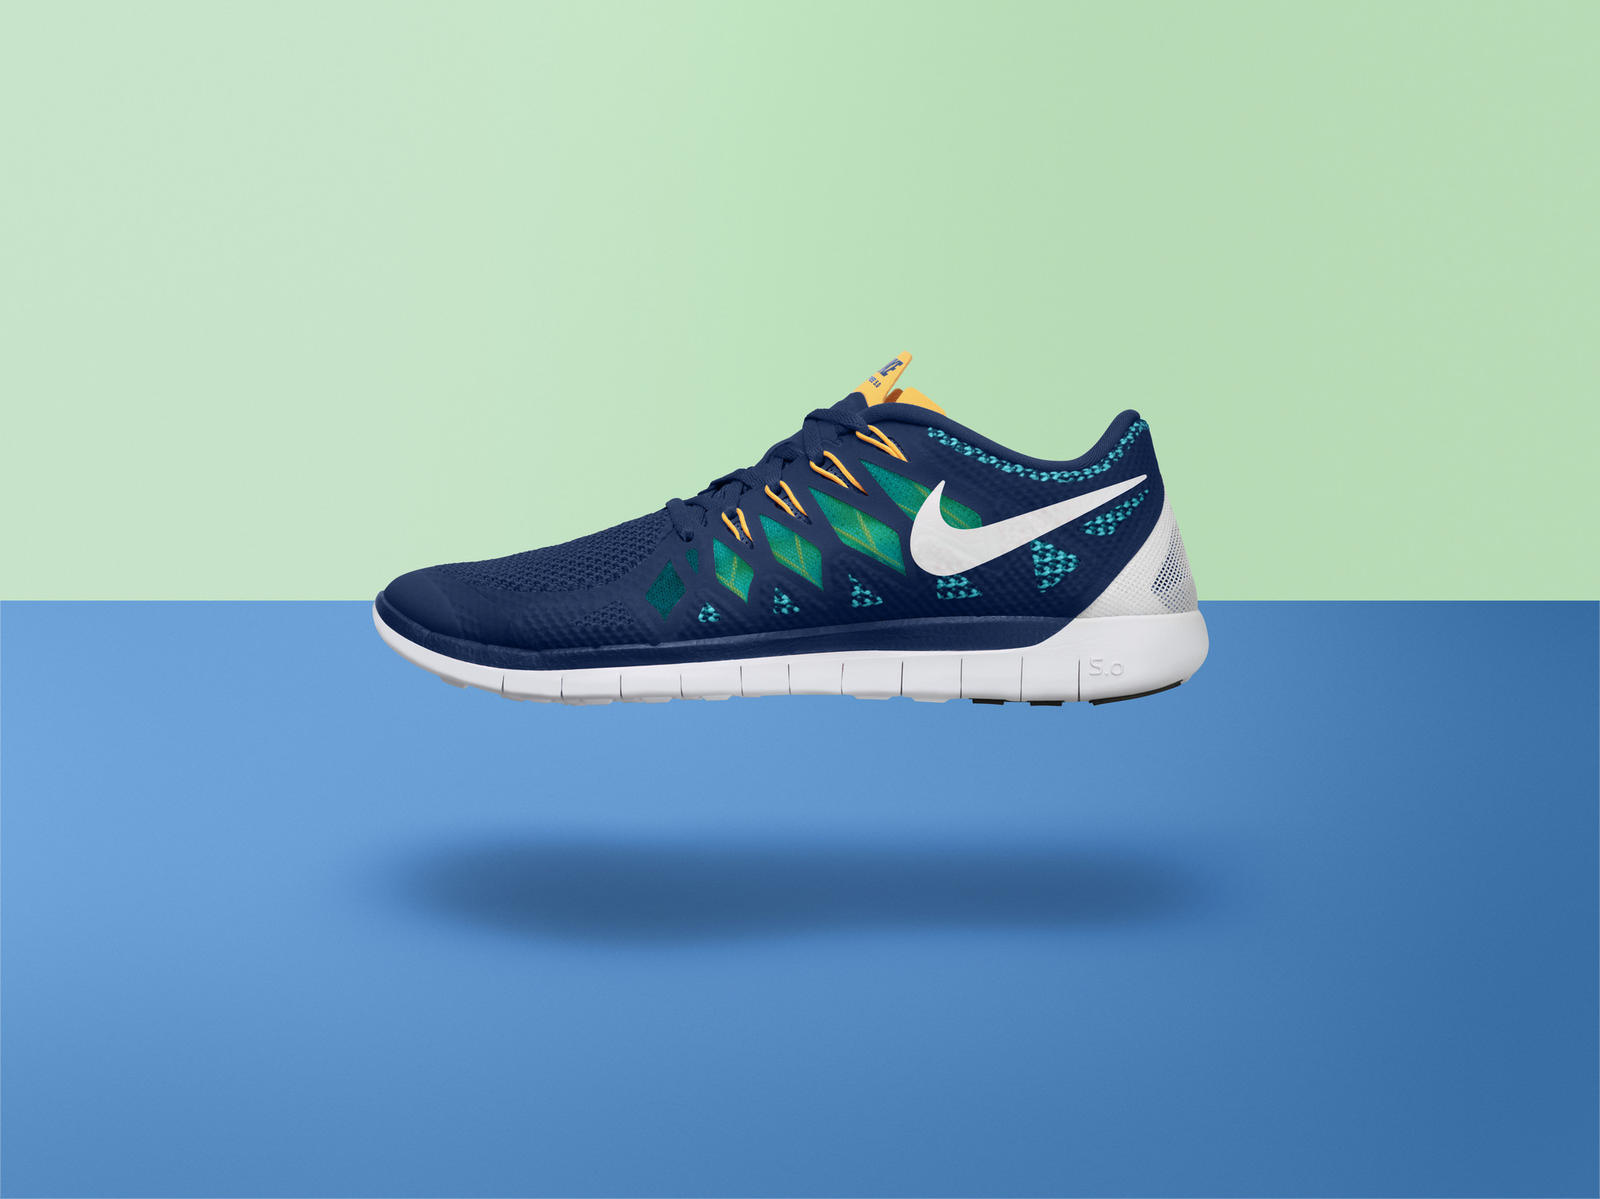 born flexible nike free 5 0 for young athletes nike news. Black Bedroom Furniture Sets. Home Design Ideas